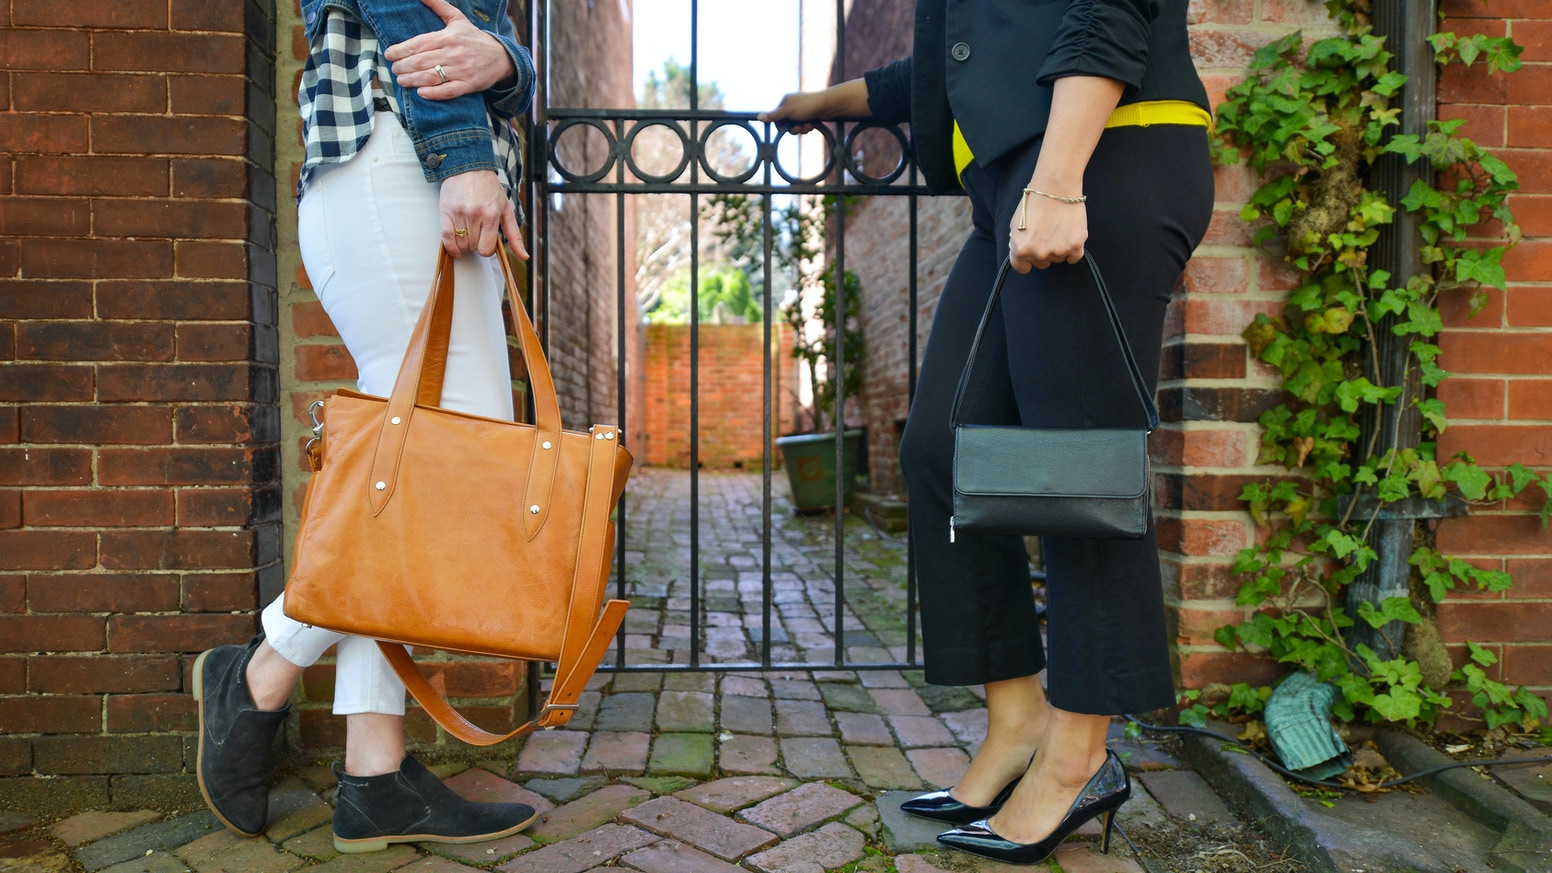 Full Grain Vegetable Tanned Leather Bags for Men & Women. Classic Exteriors, Organized & Modern Interiors. Made Responsibly